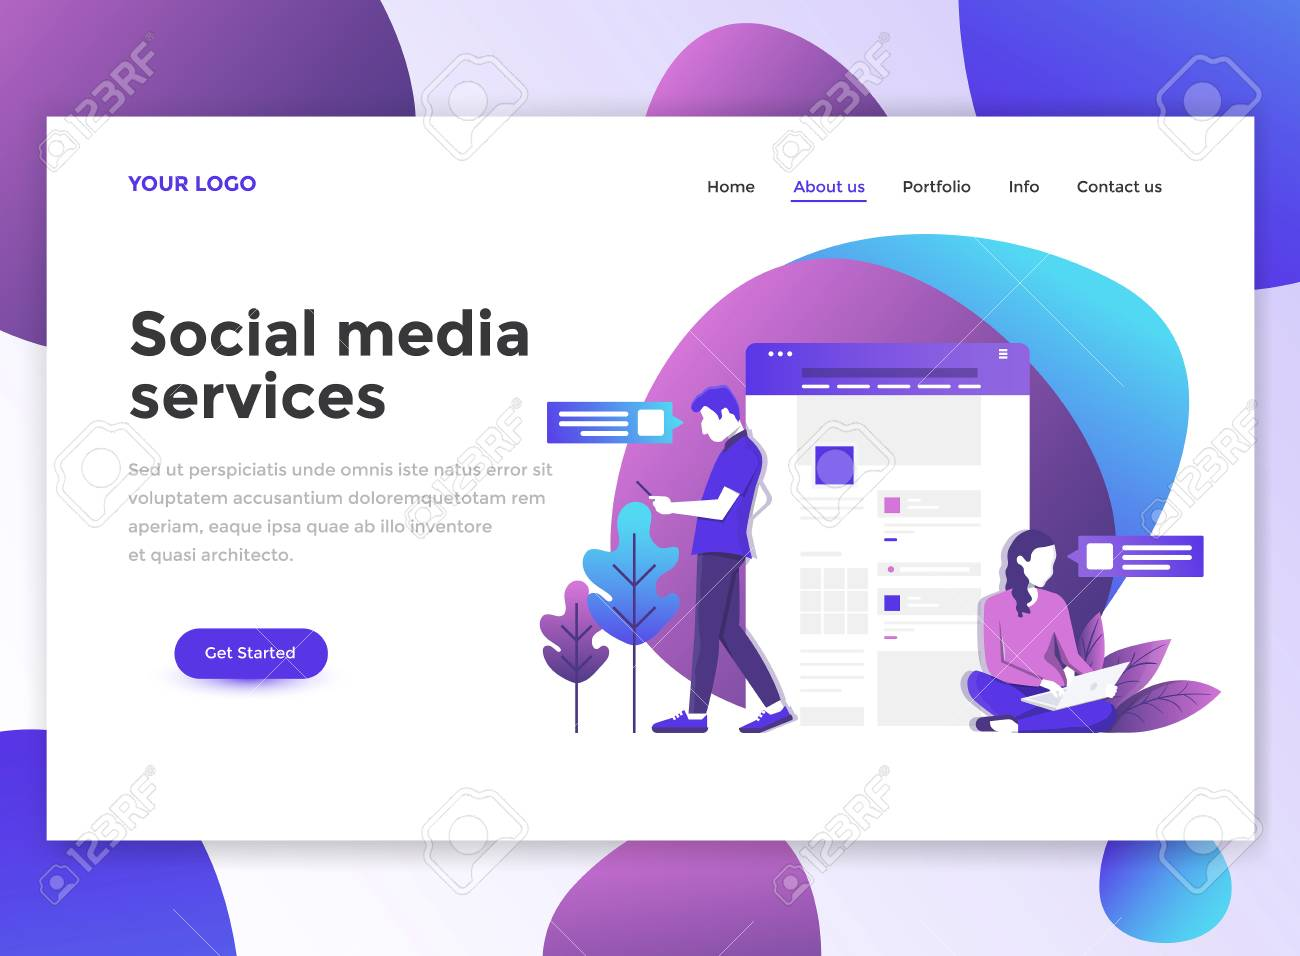 Landing Page Template Of Social Media Services Modern Flat Design Royalty Free Cliparts Vectors And Stock Illustration Image 99990257